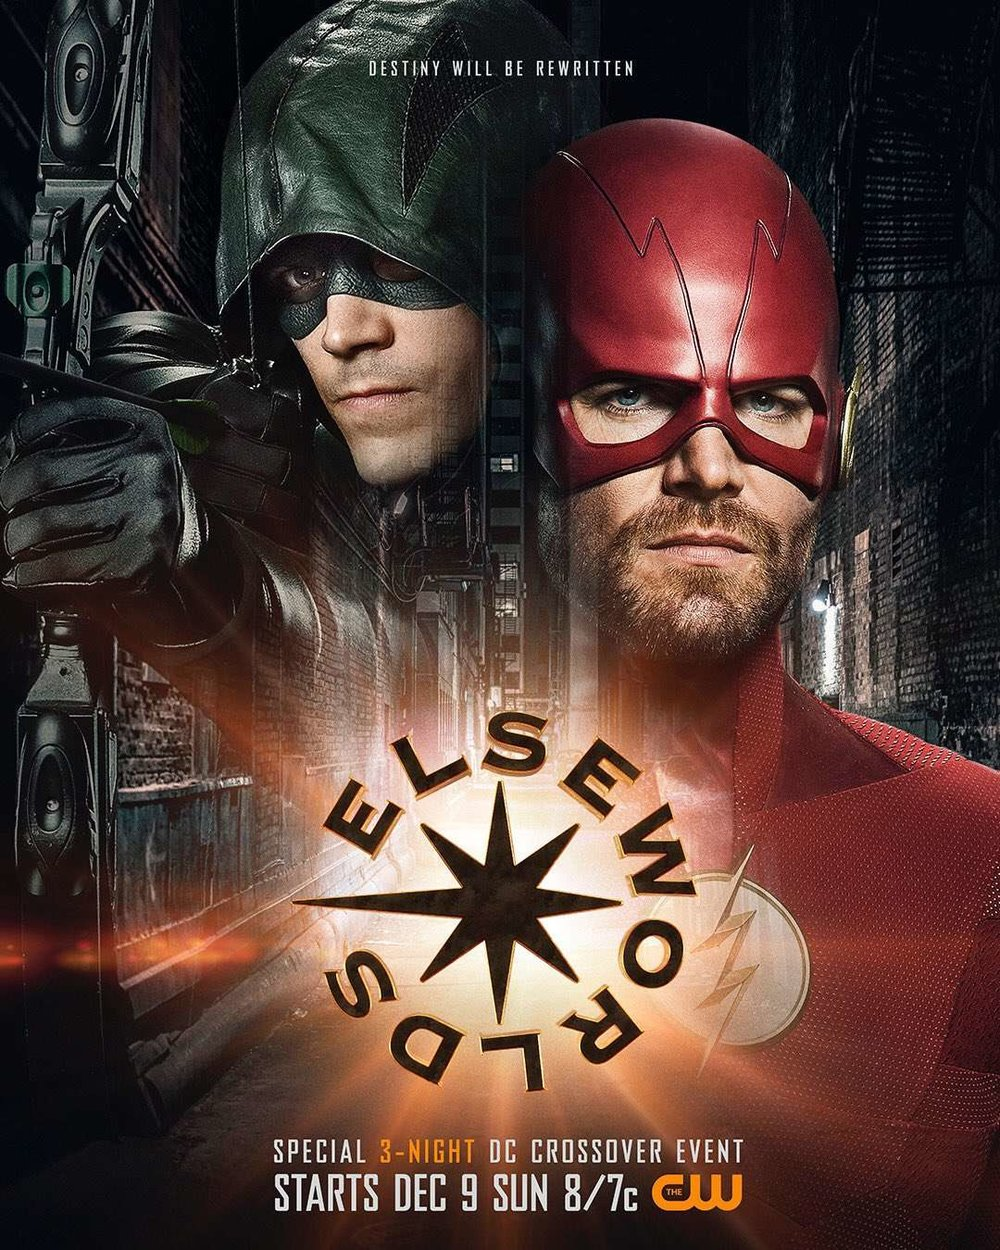 the-flash-is-green-arrow-and-green-arrow-is-the-flash-in-this-new-poster-for-elseworlds-arrowverse-crossover